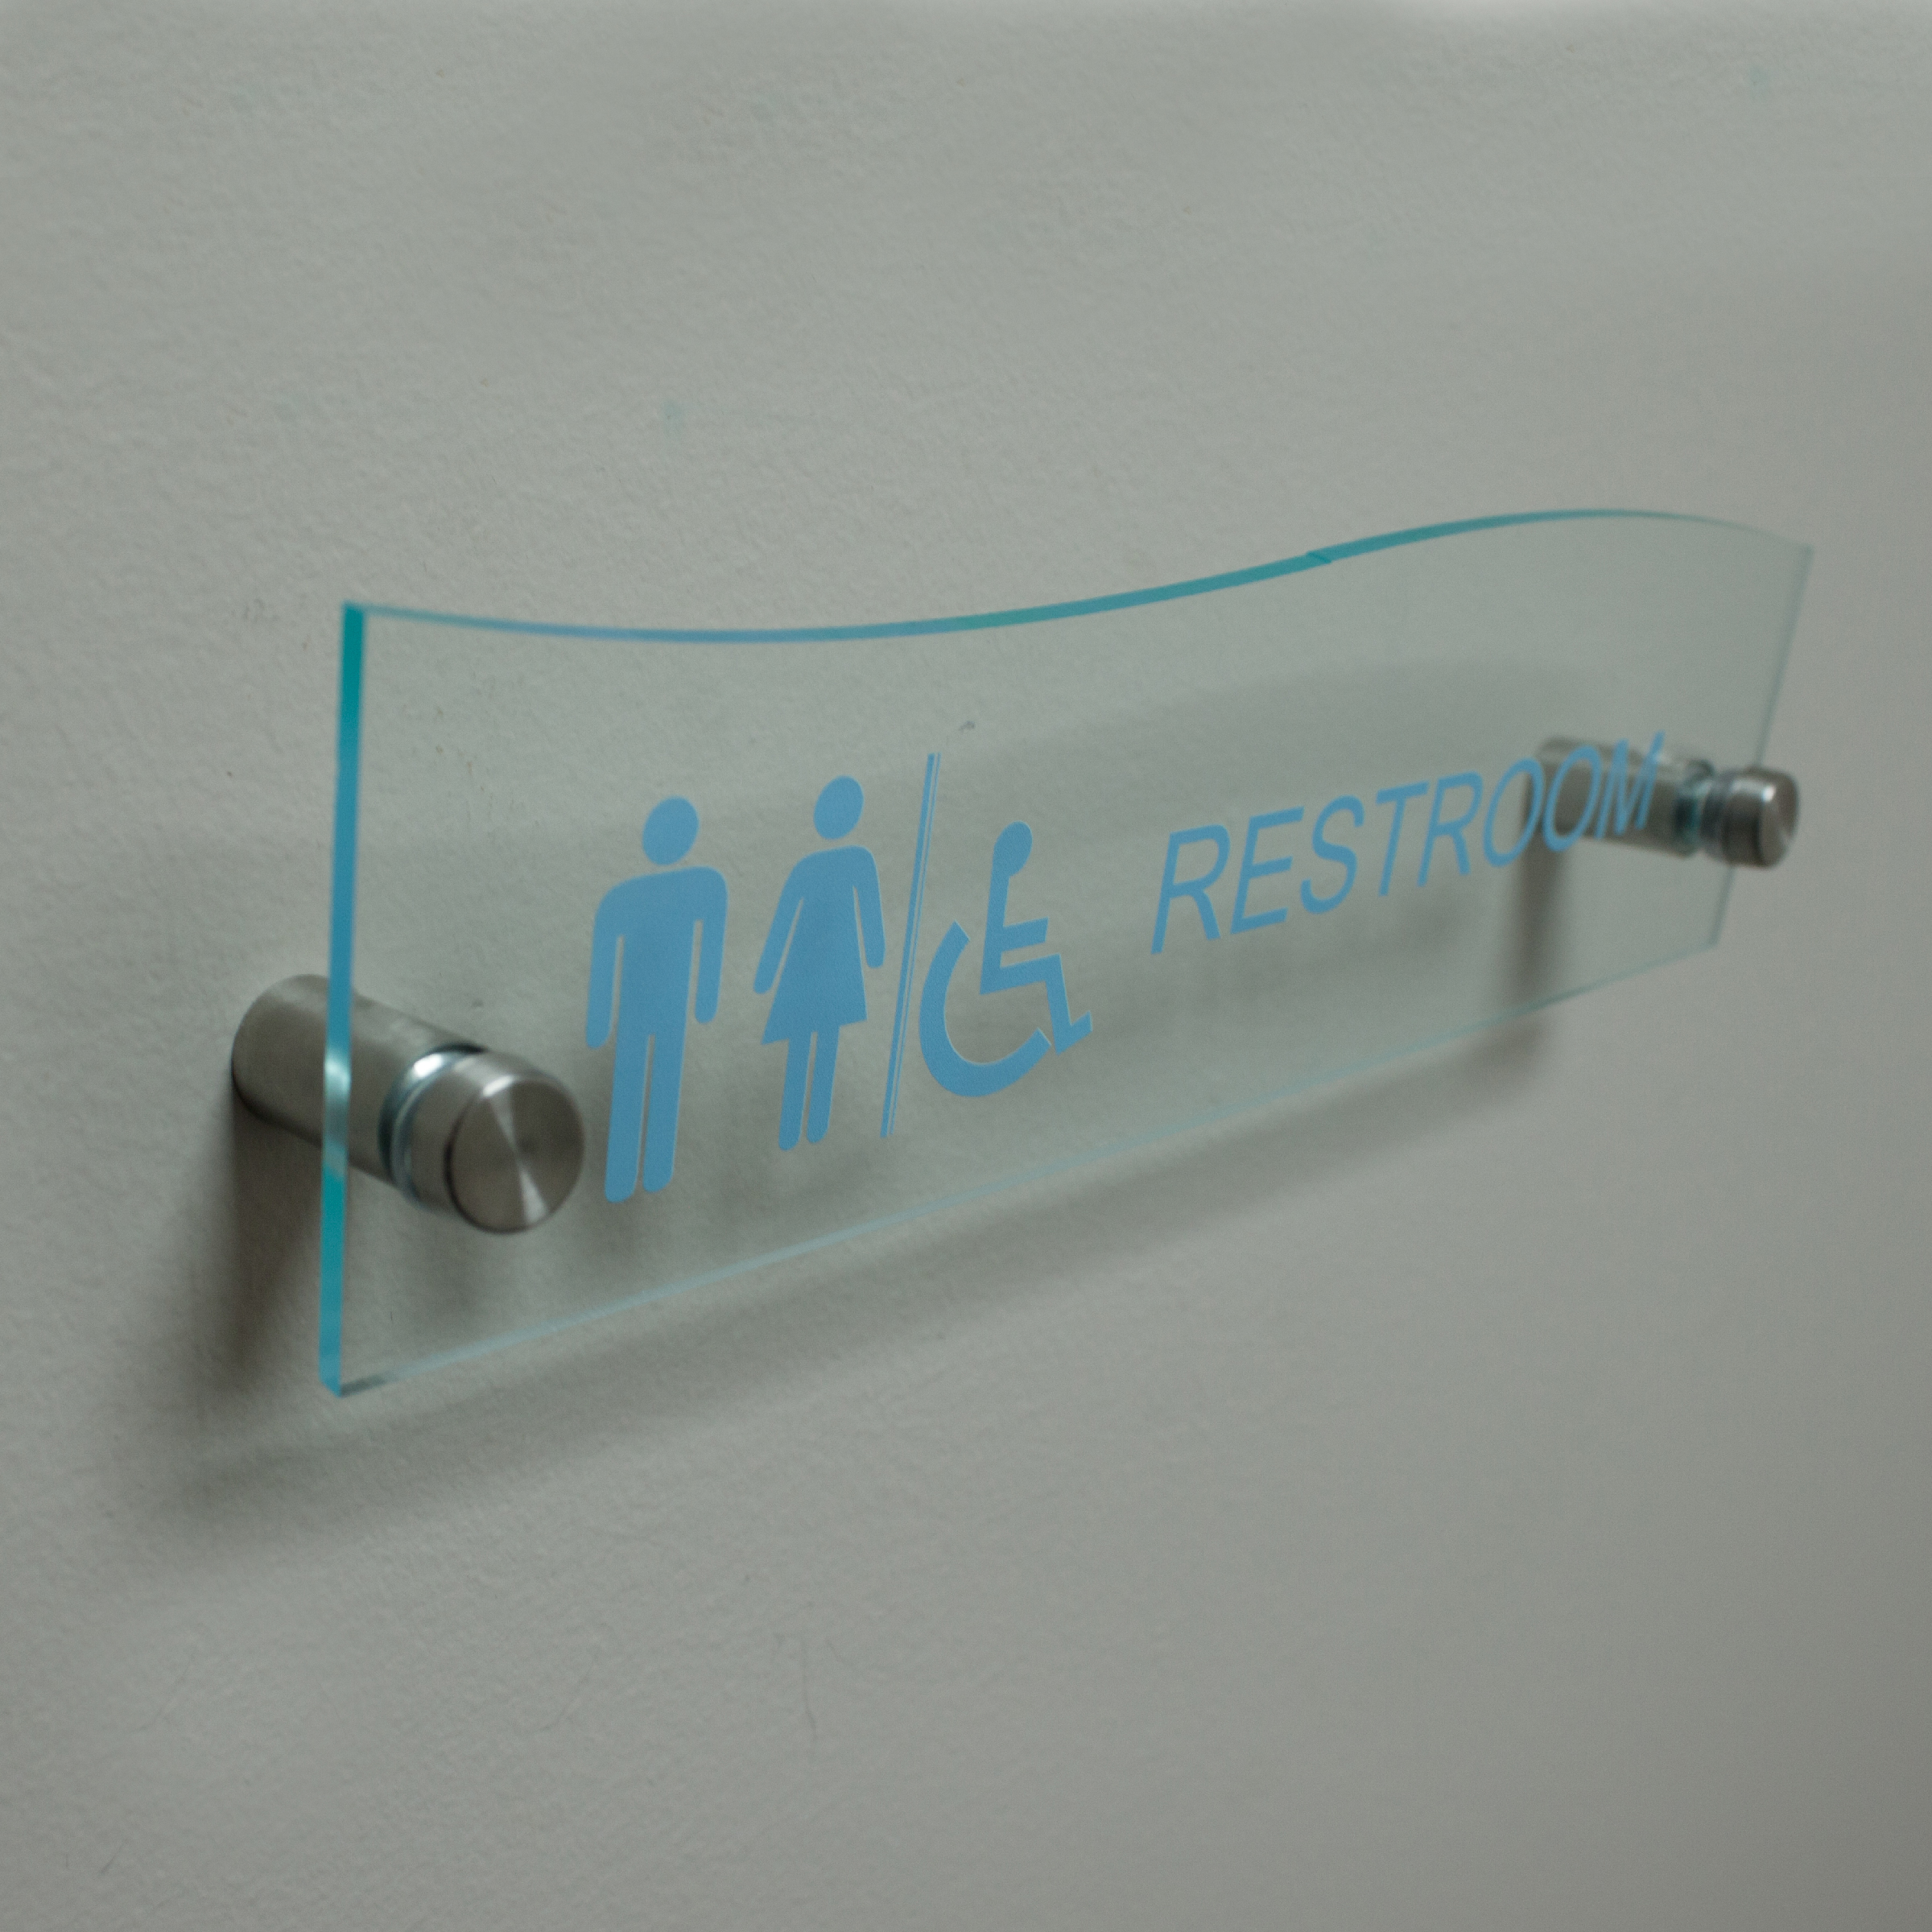 Wall Acrylic Office Nameplates with Full-Color Printing - Top Wave Shape